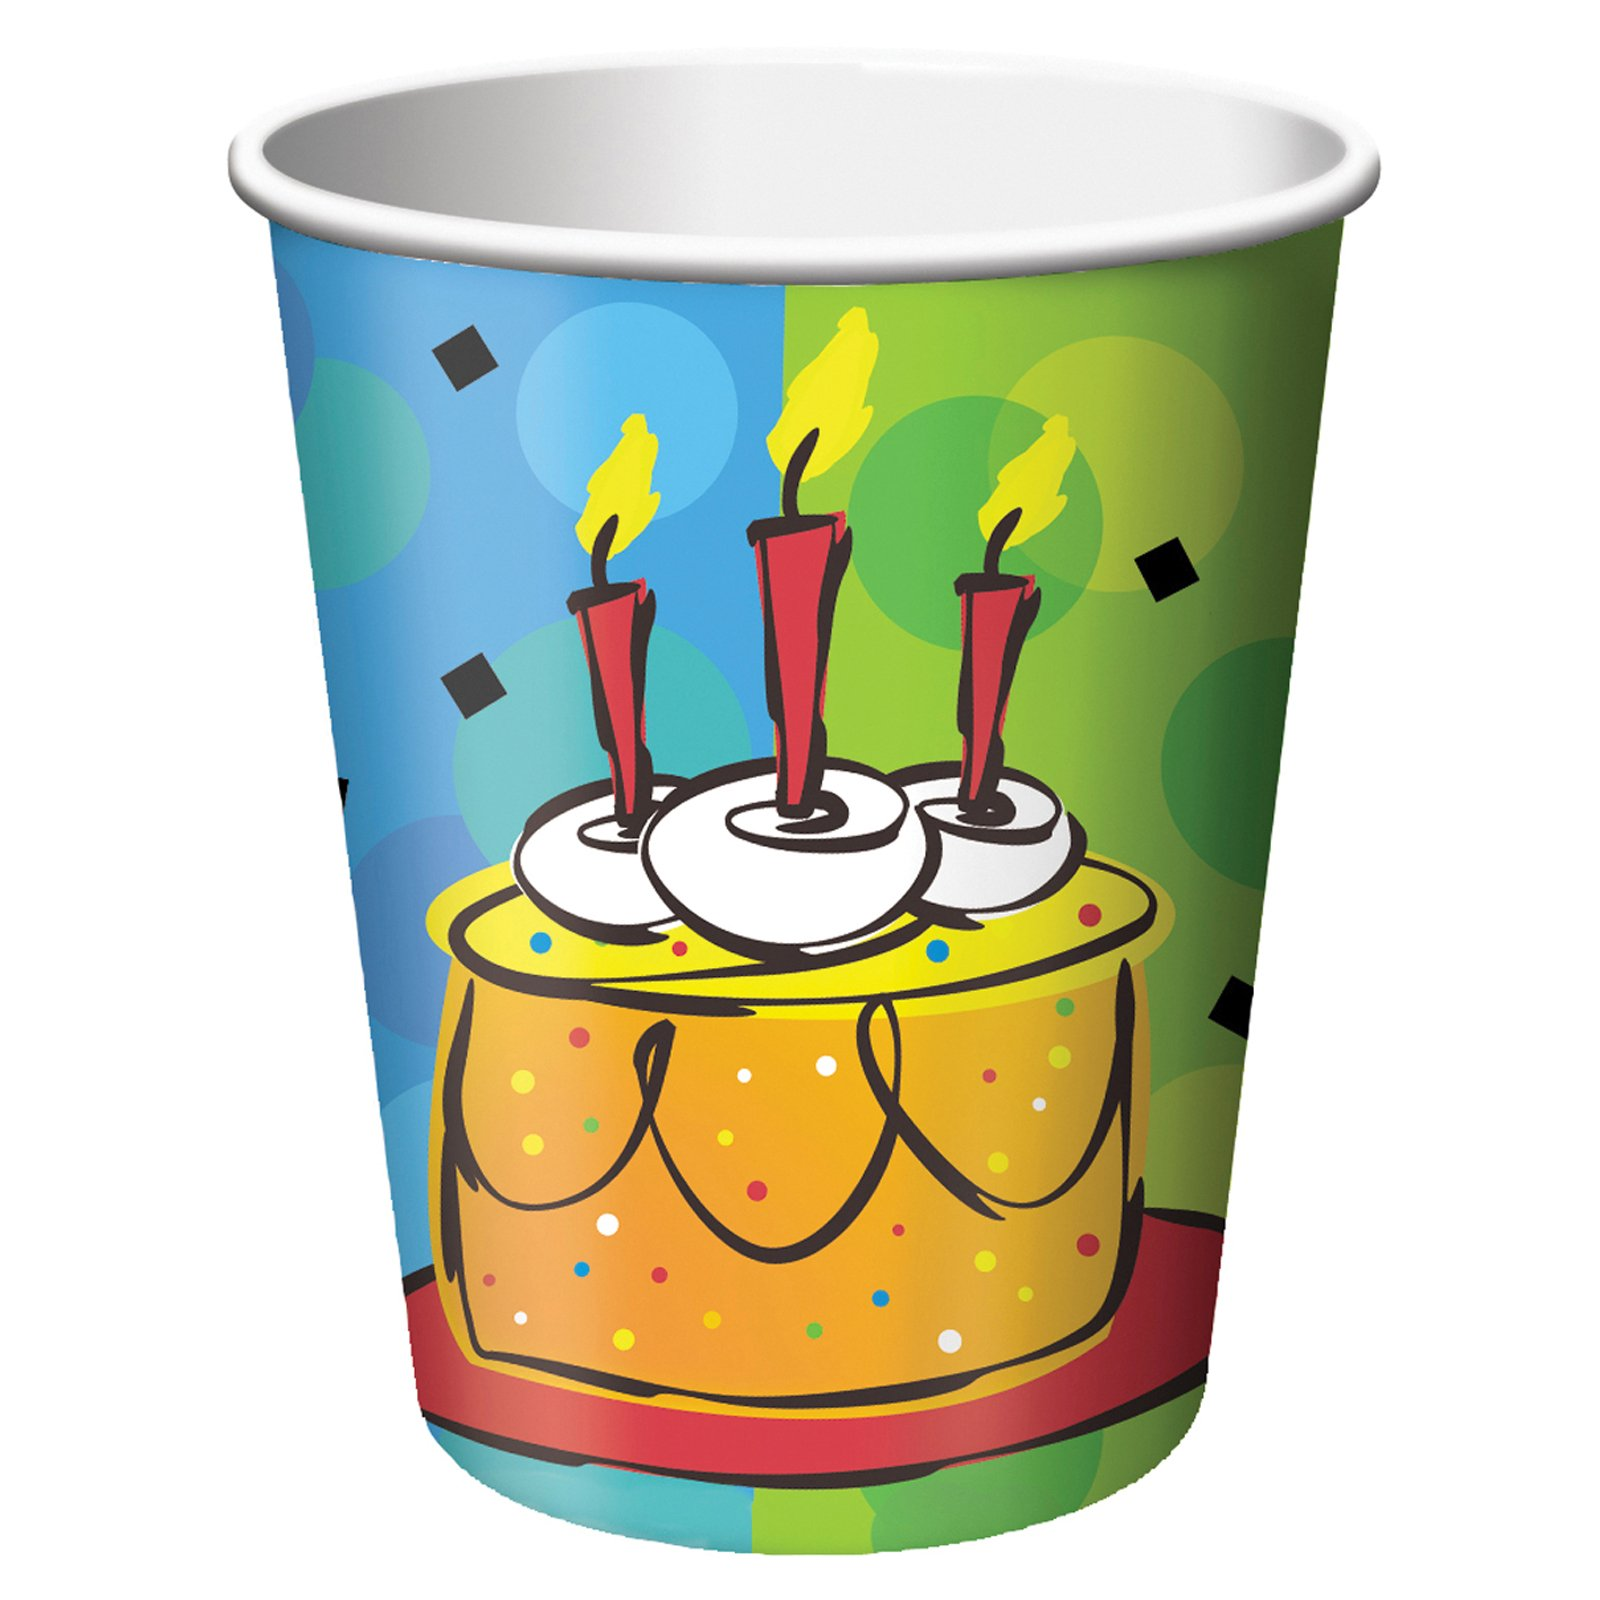 Cake Celebration 9 oz. Paper Cups (8 count)